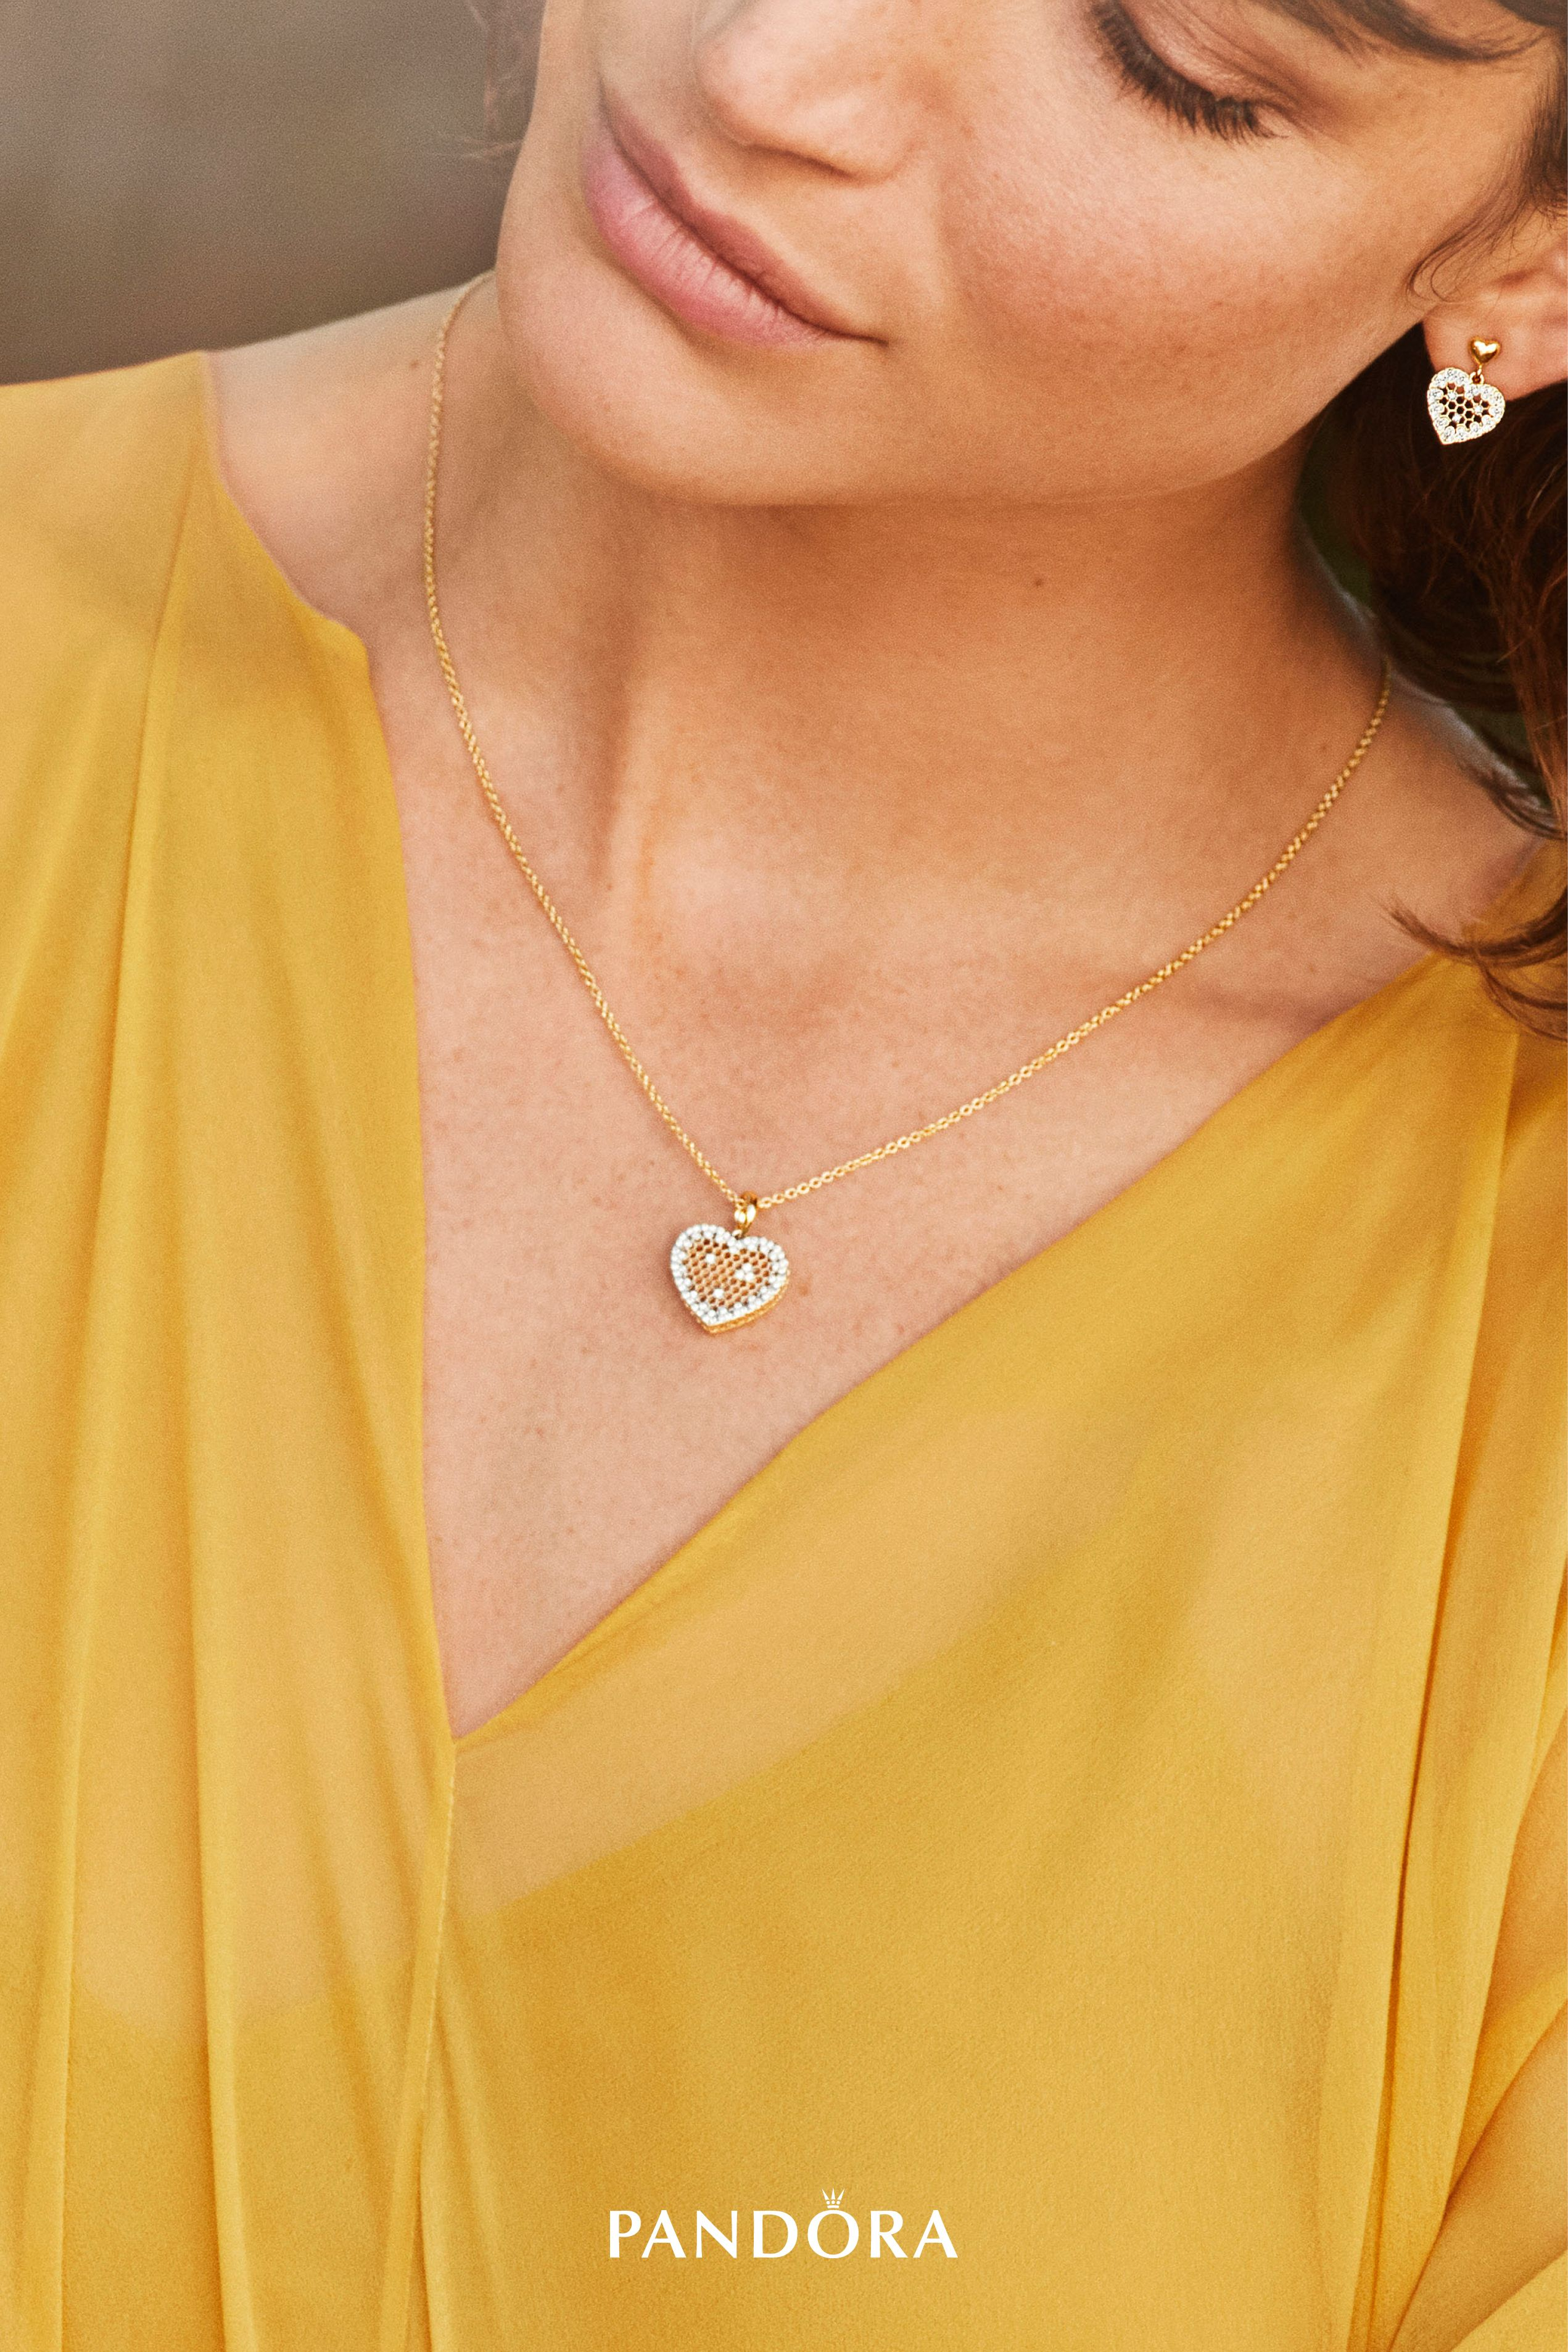 1b6e75e06 Show your sweet side with our new PANDORA Shine honeycomb-inspired earrings  and necklace pendants. Crafted in 18k gold-plated sterling silver, their  lavish ...